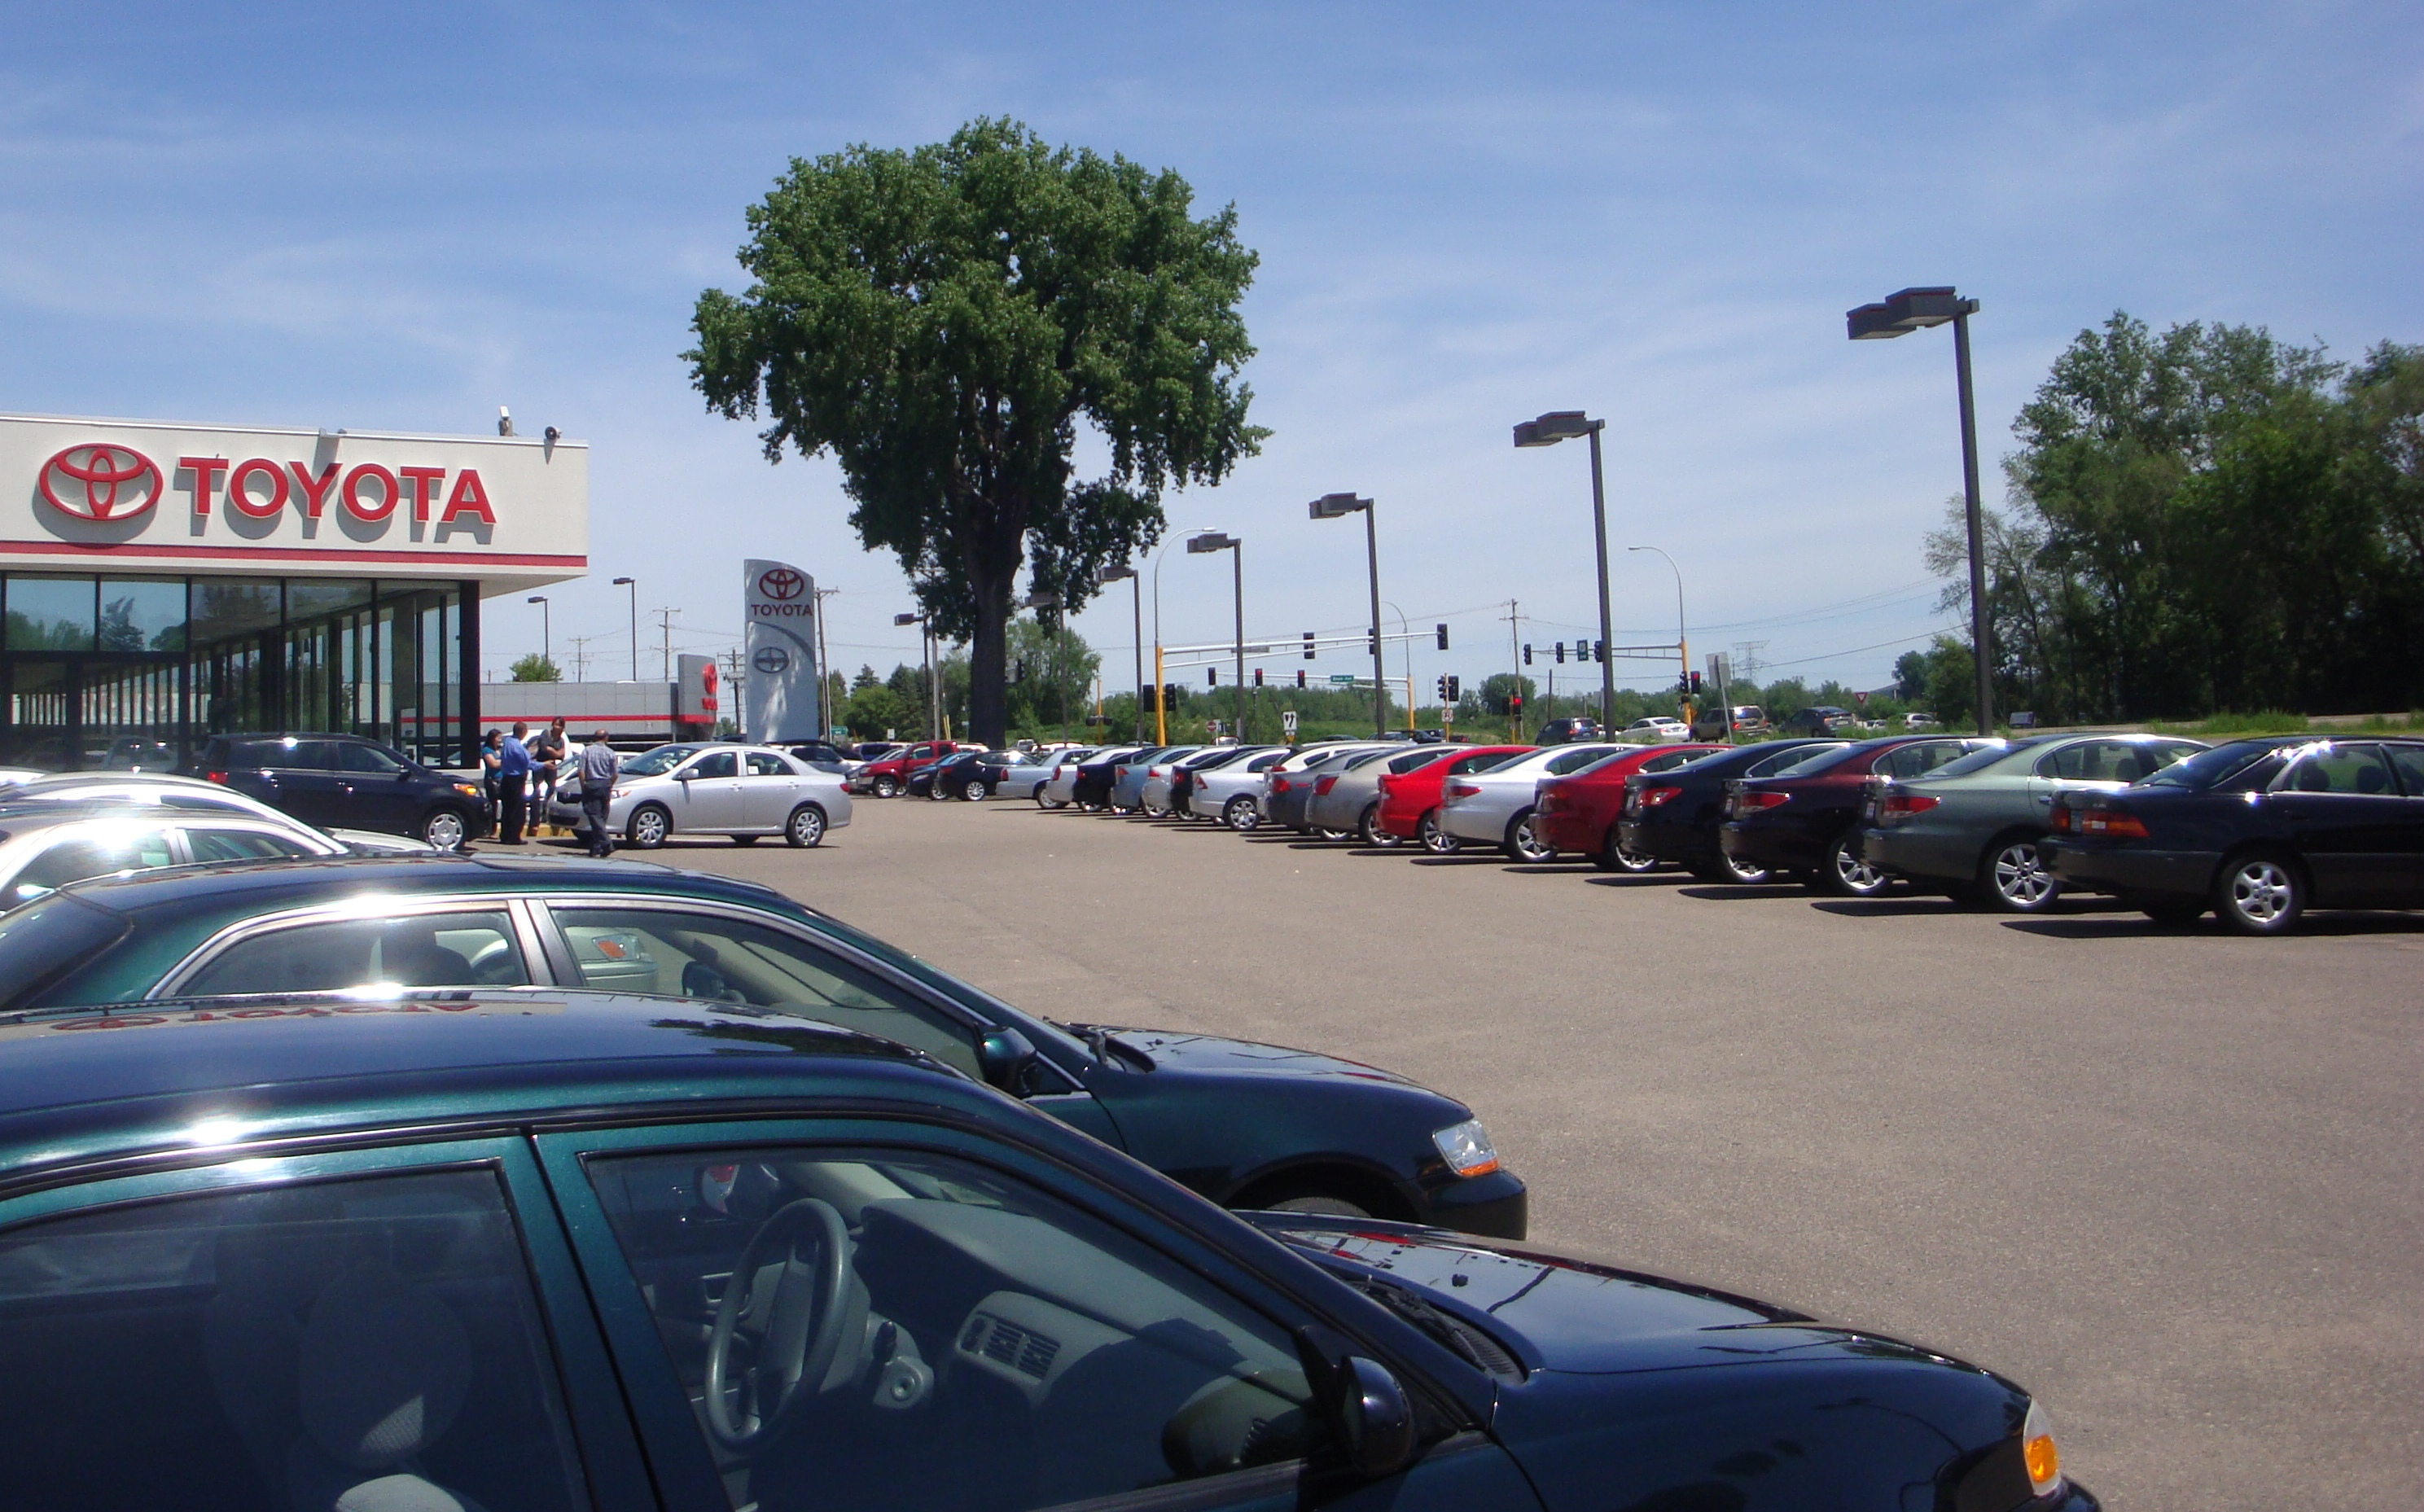 The Maplewood Toyota dealership in St. Paul, Minnesota, in the United States.